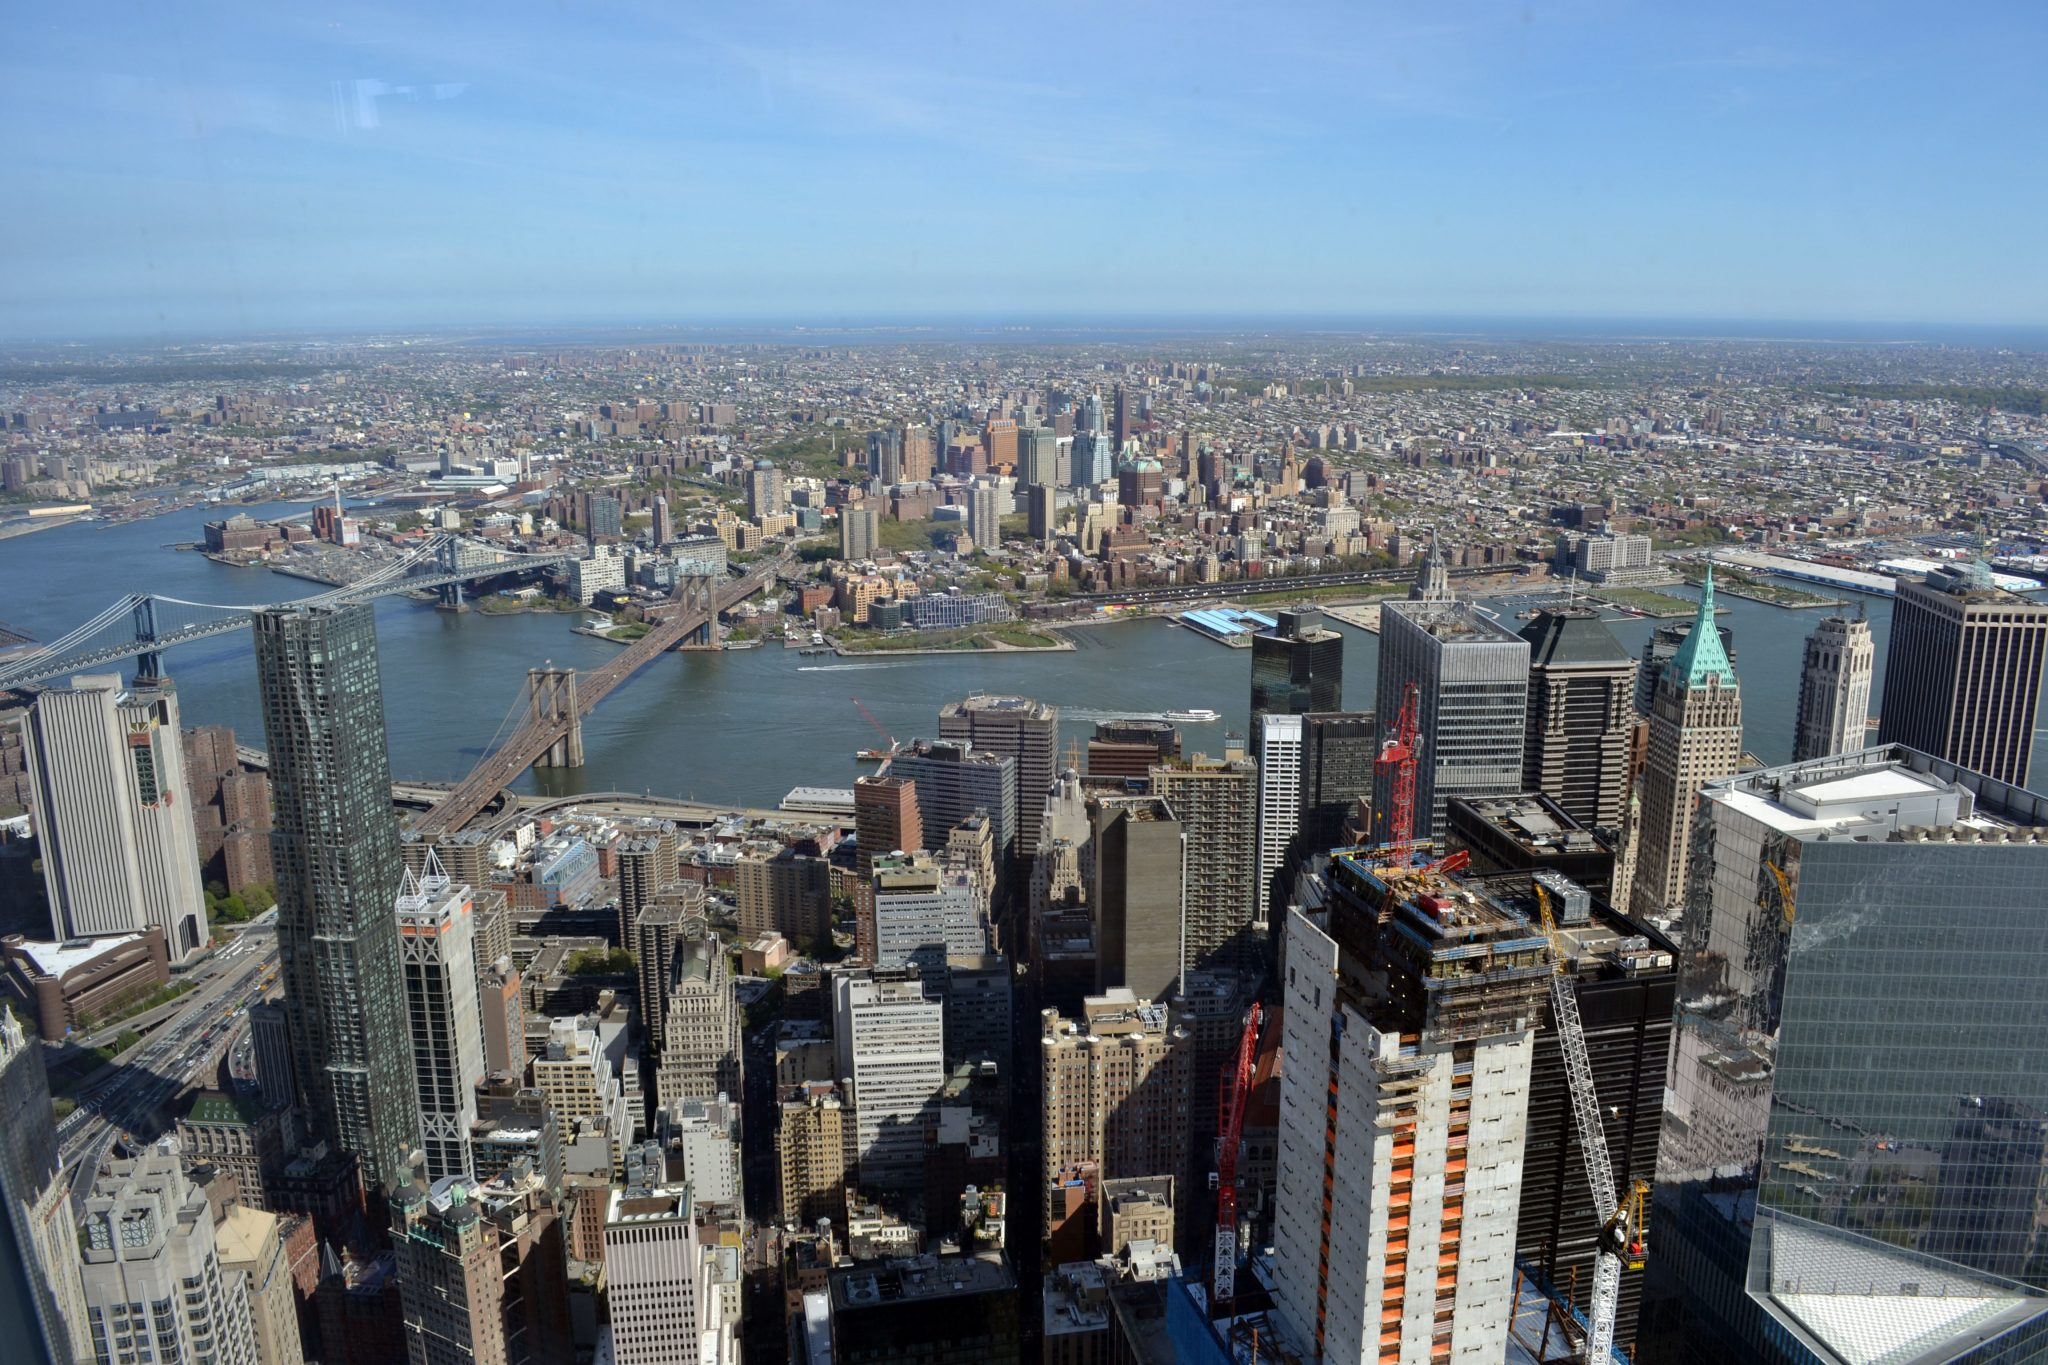 10 Things I Learned in New York | Living Abroad - One World Observatory 4